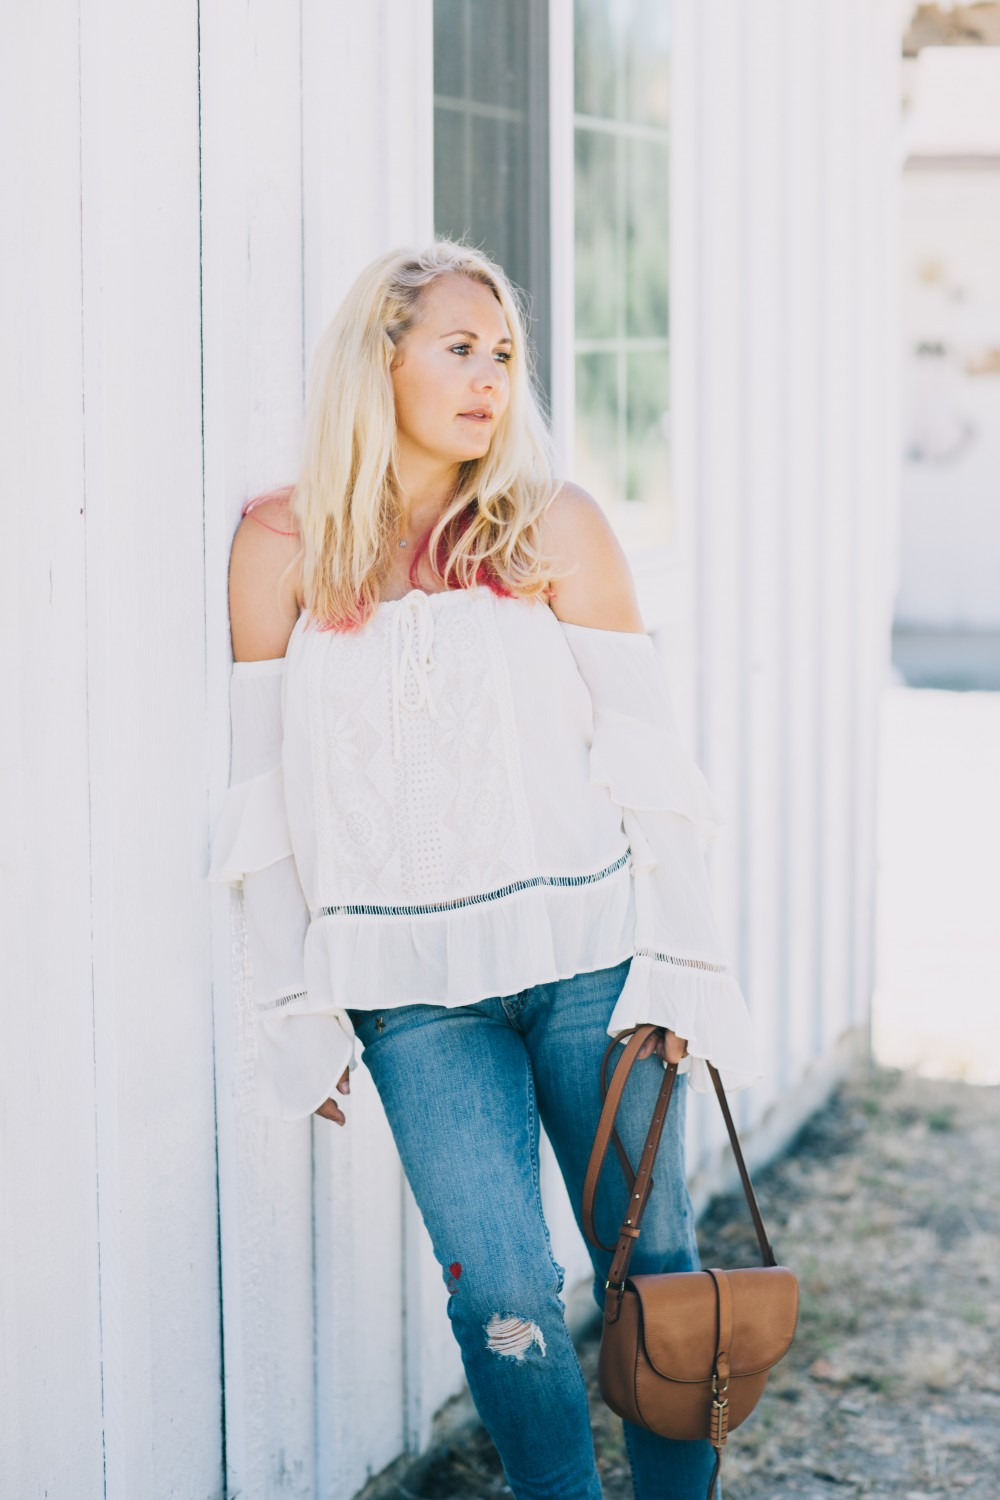 3 Rodeo Ready Outfits-California Rodeo Salinas-Outfit Inspiration-What to Wear to the Rodeo-What to Wear to a Country Concert-Have Need Want 17